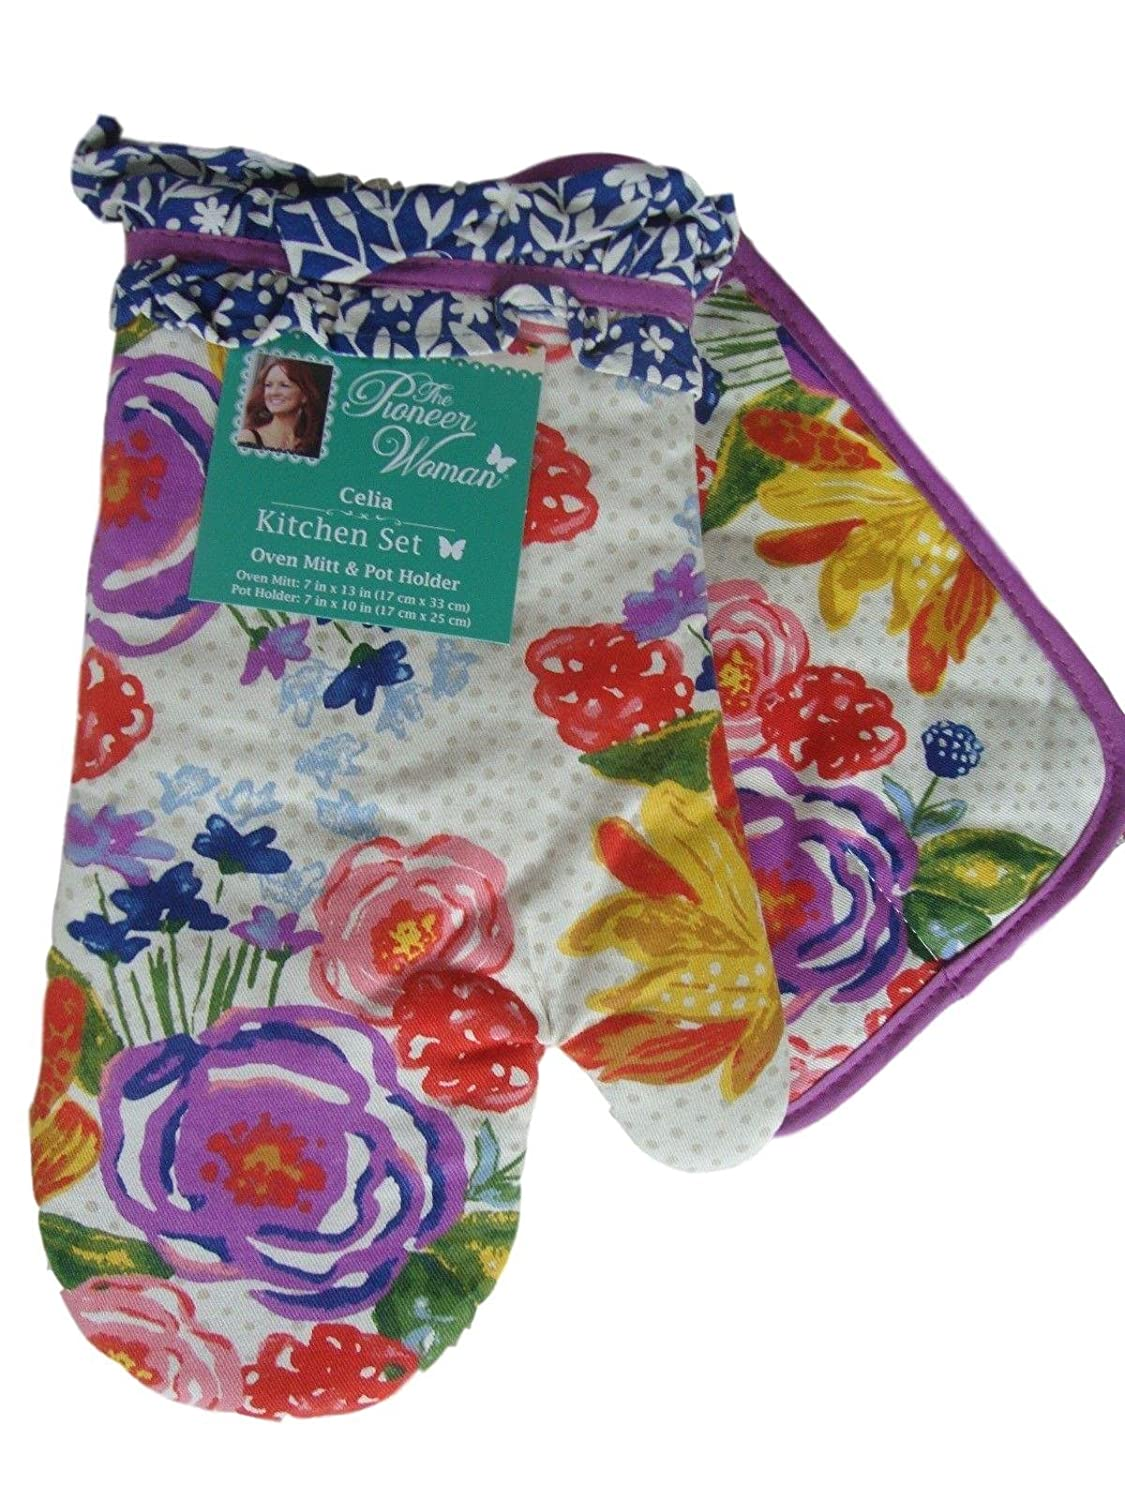 Pioneer Woman Oven Mitt and Pot Holder Set Celia Collection Kitchen Floral